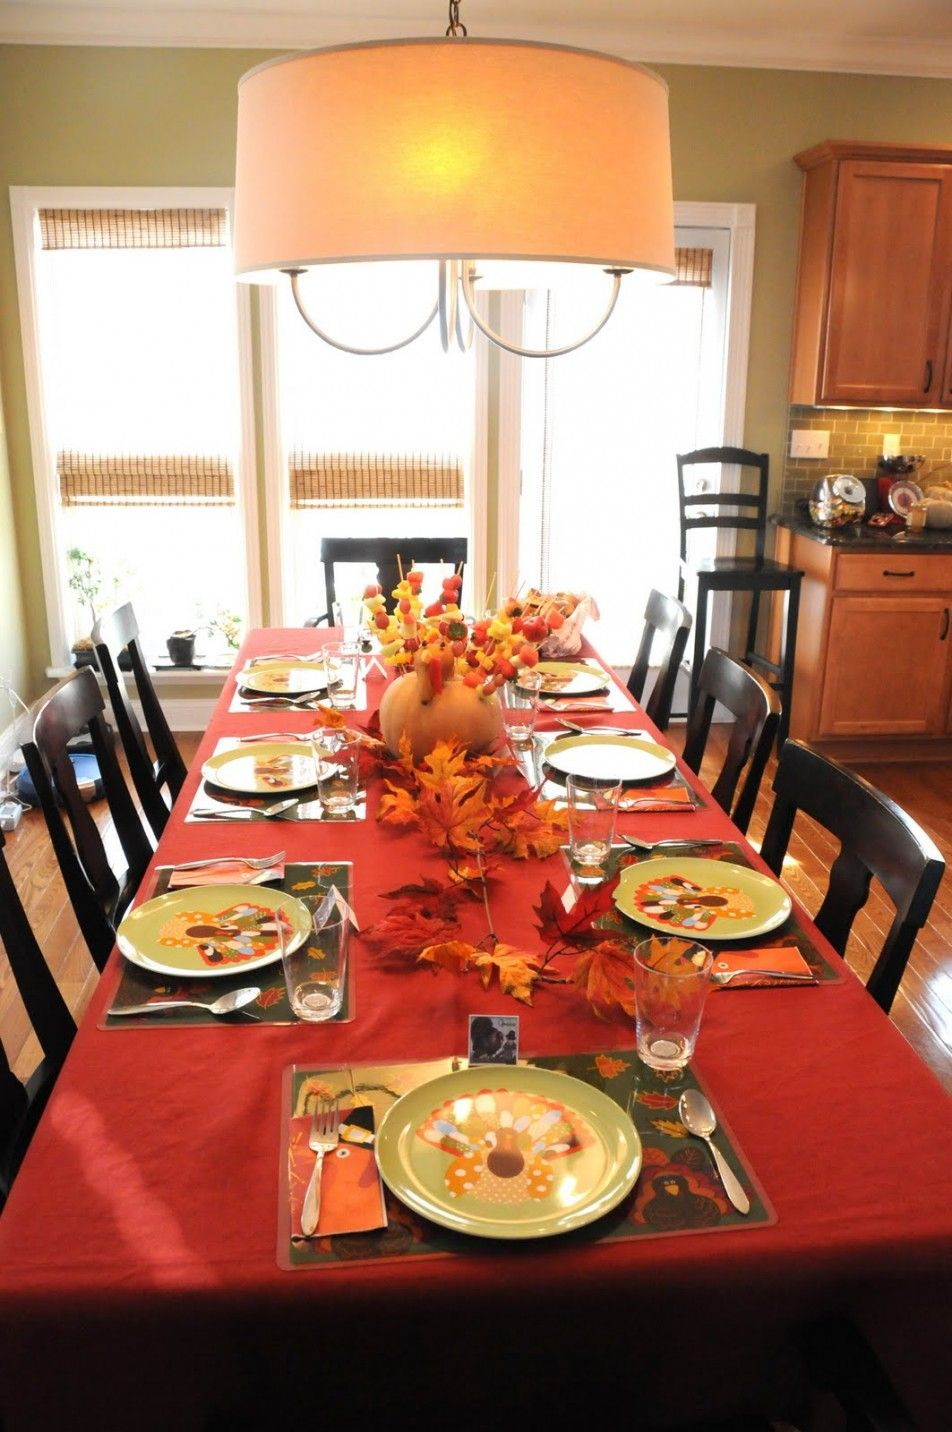 Decoration:Breathtaking Thanksgiving Decorating Ideas With Chandeliers Also  Cozy Dining Sets With Red Table Cloth And Wood Chairs Also Wood Cabinets  And ...